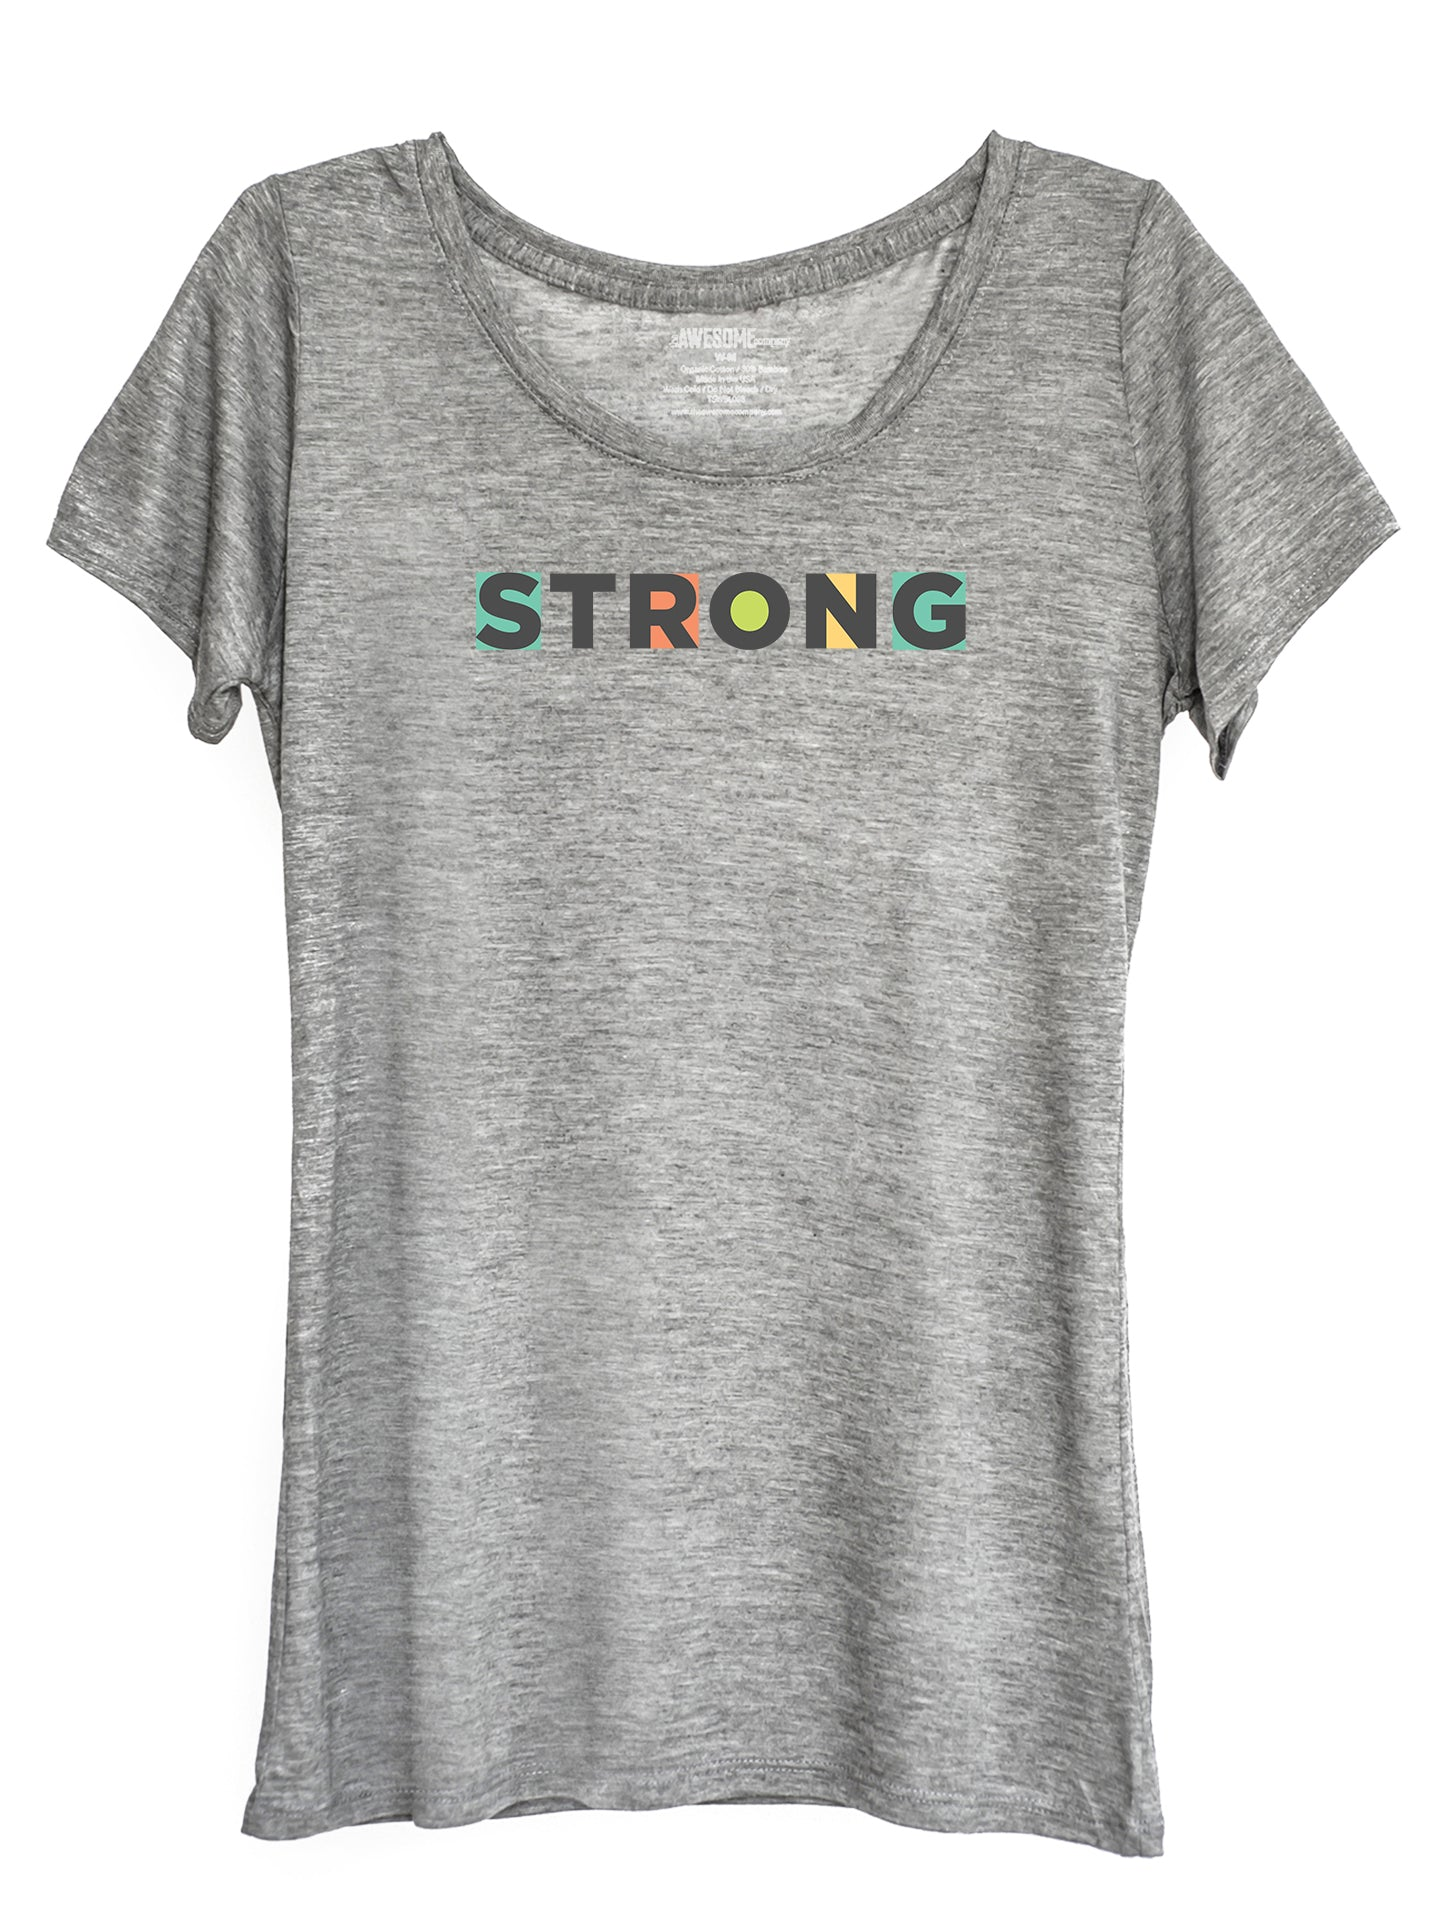 The Power of Words - Women's Tee - STRONG